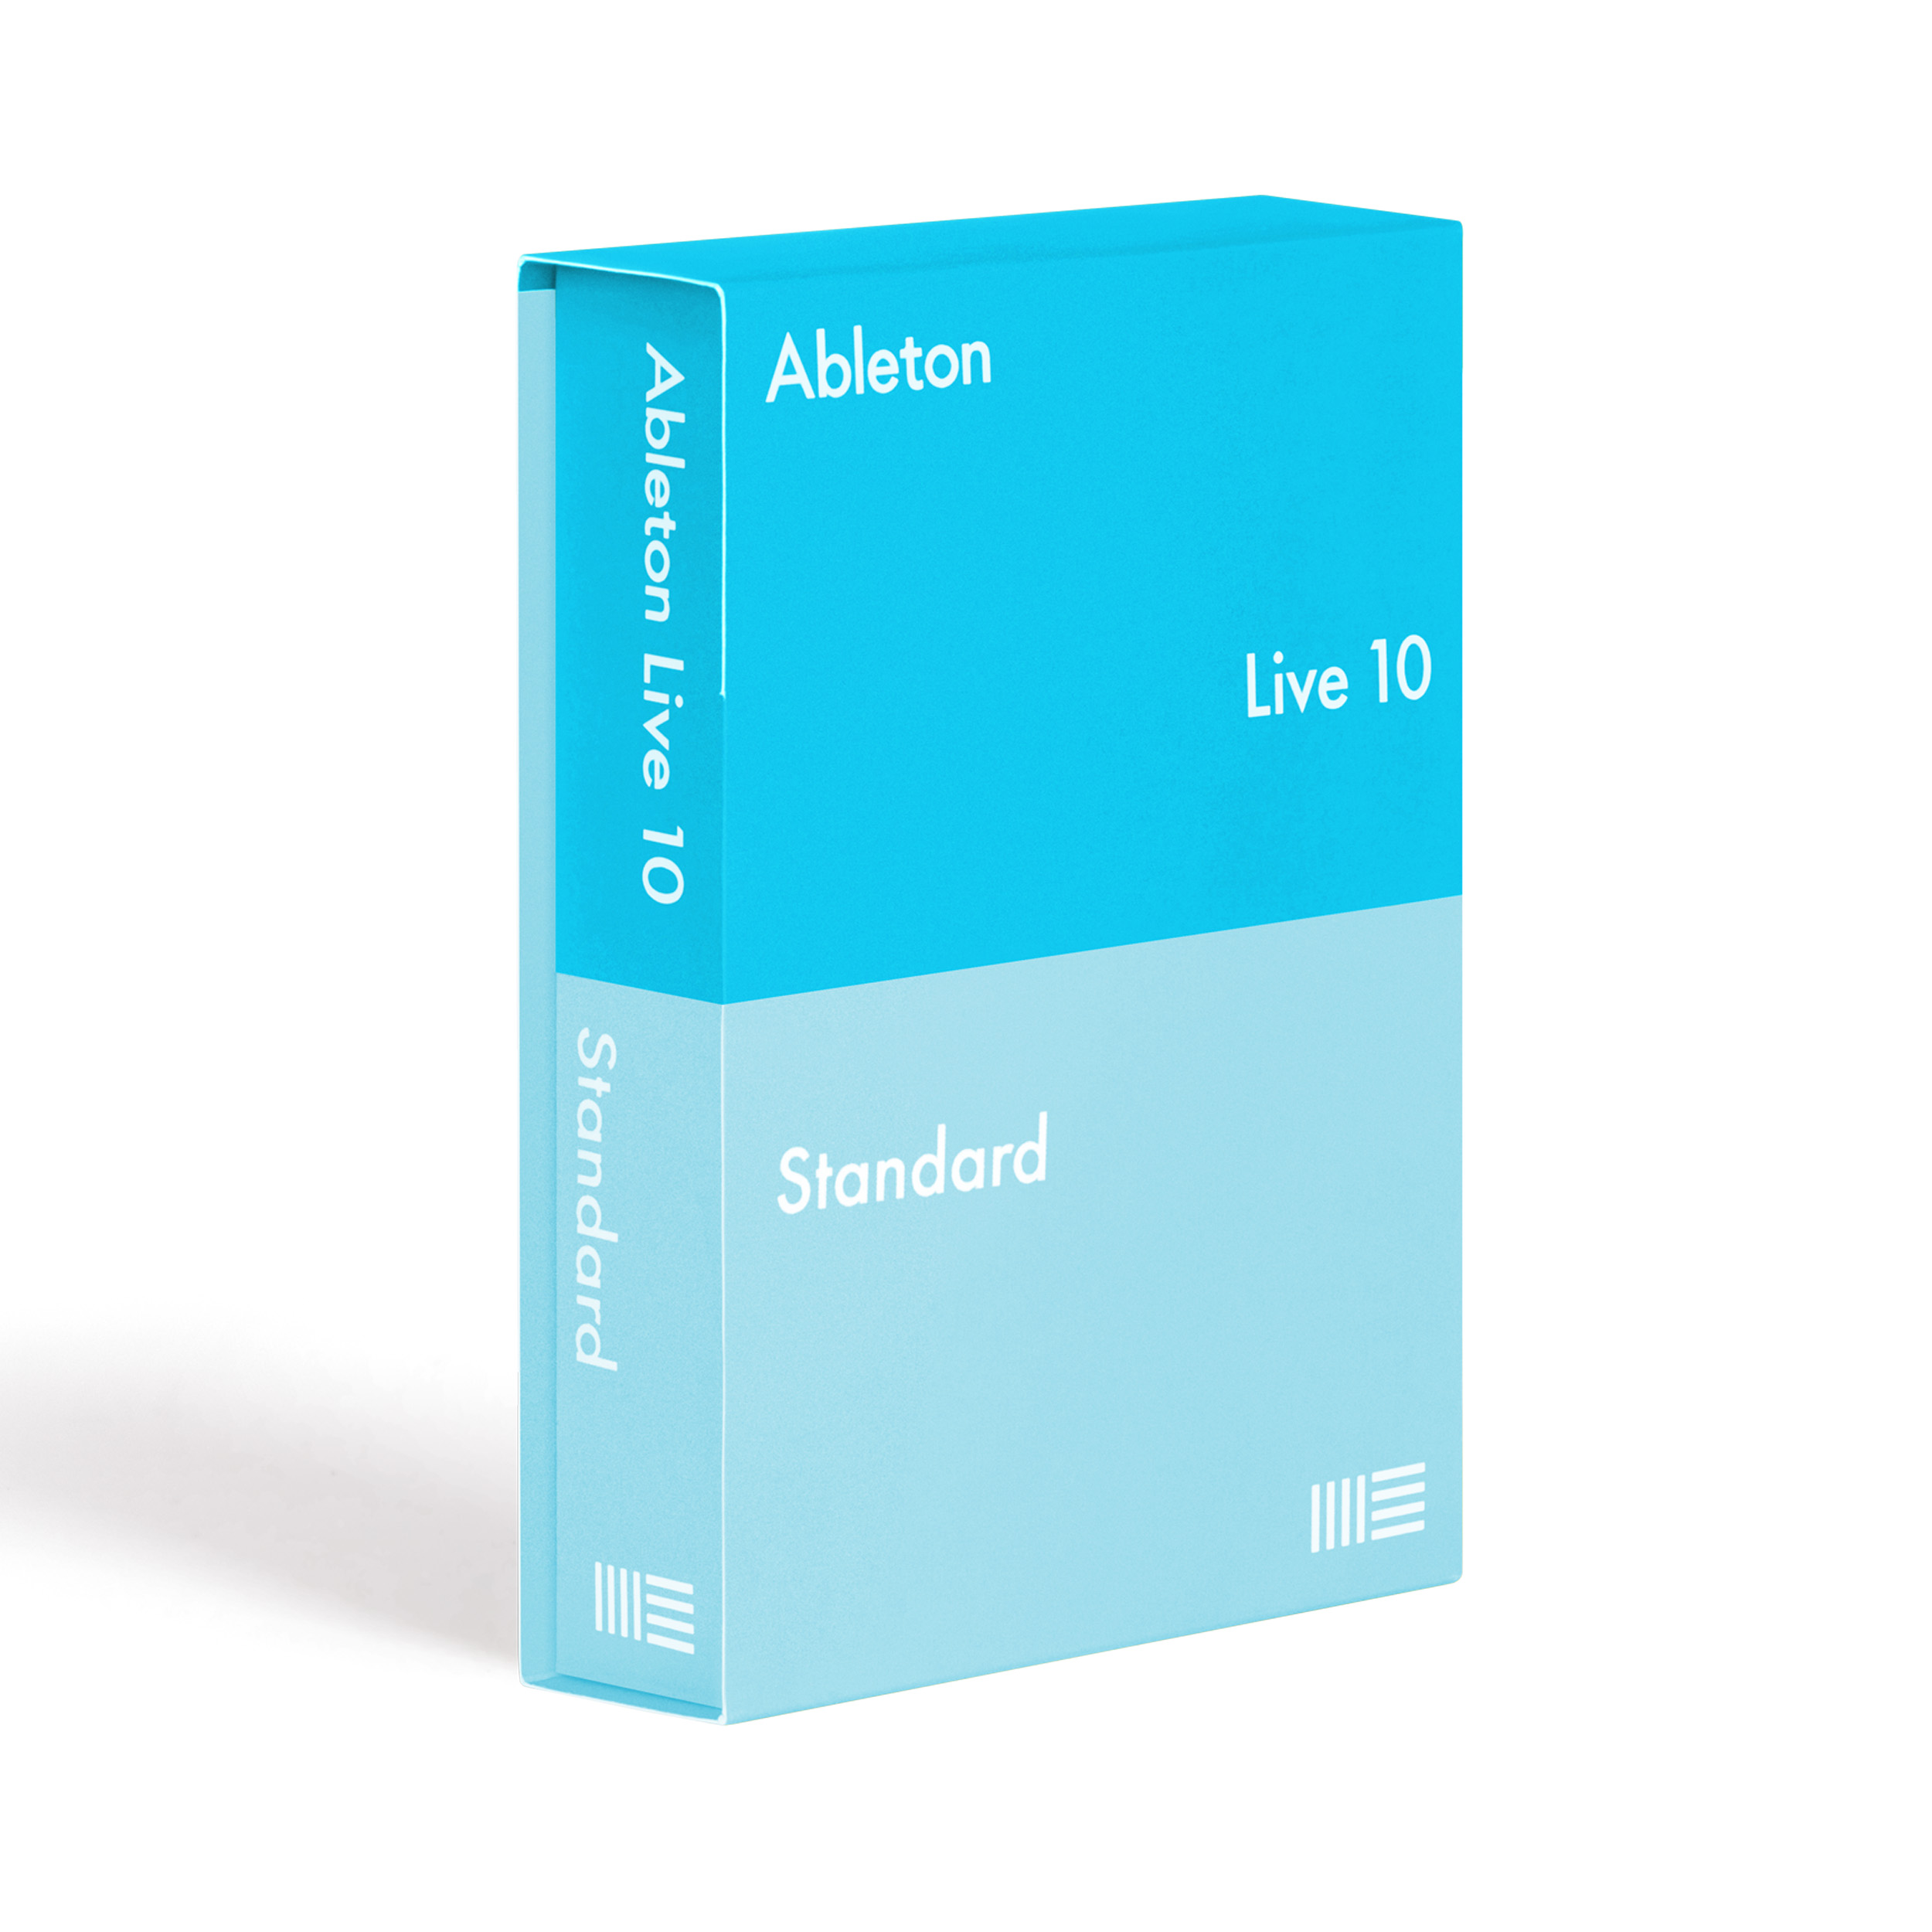 Ableton Live 10 Standard Edition Boxed by Ableton